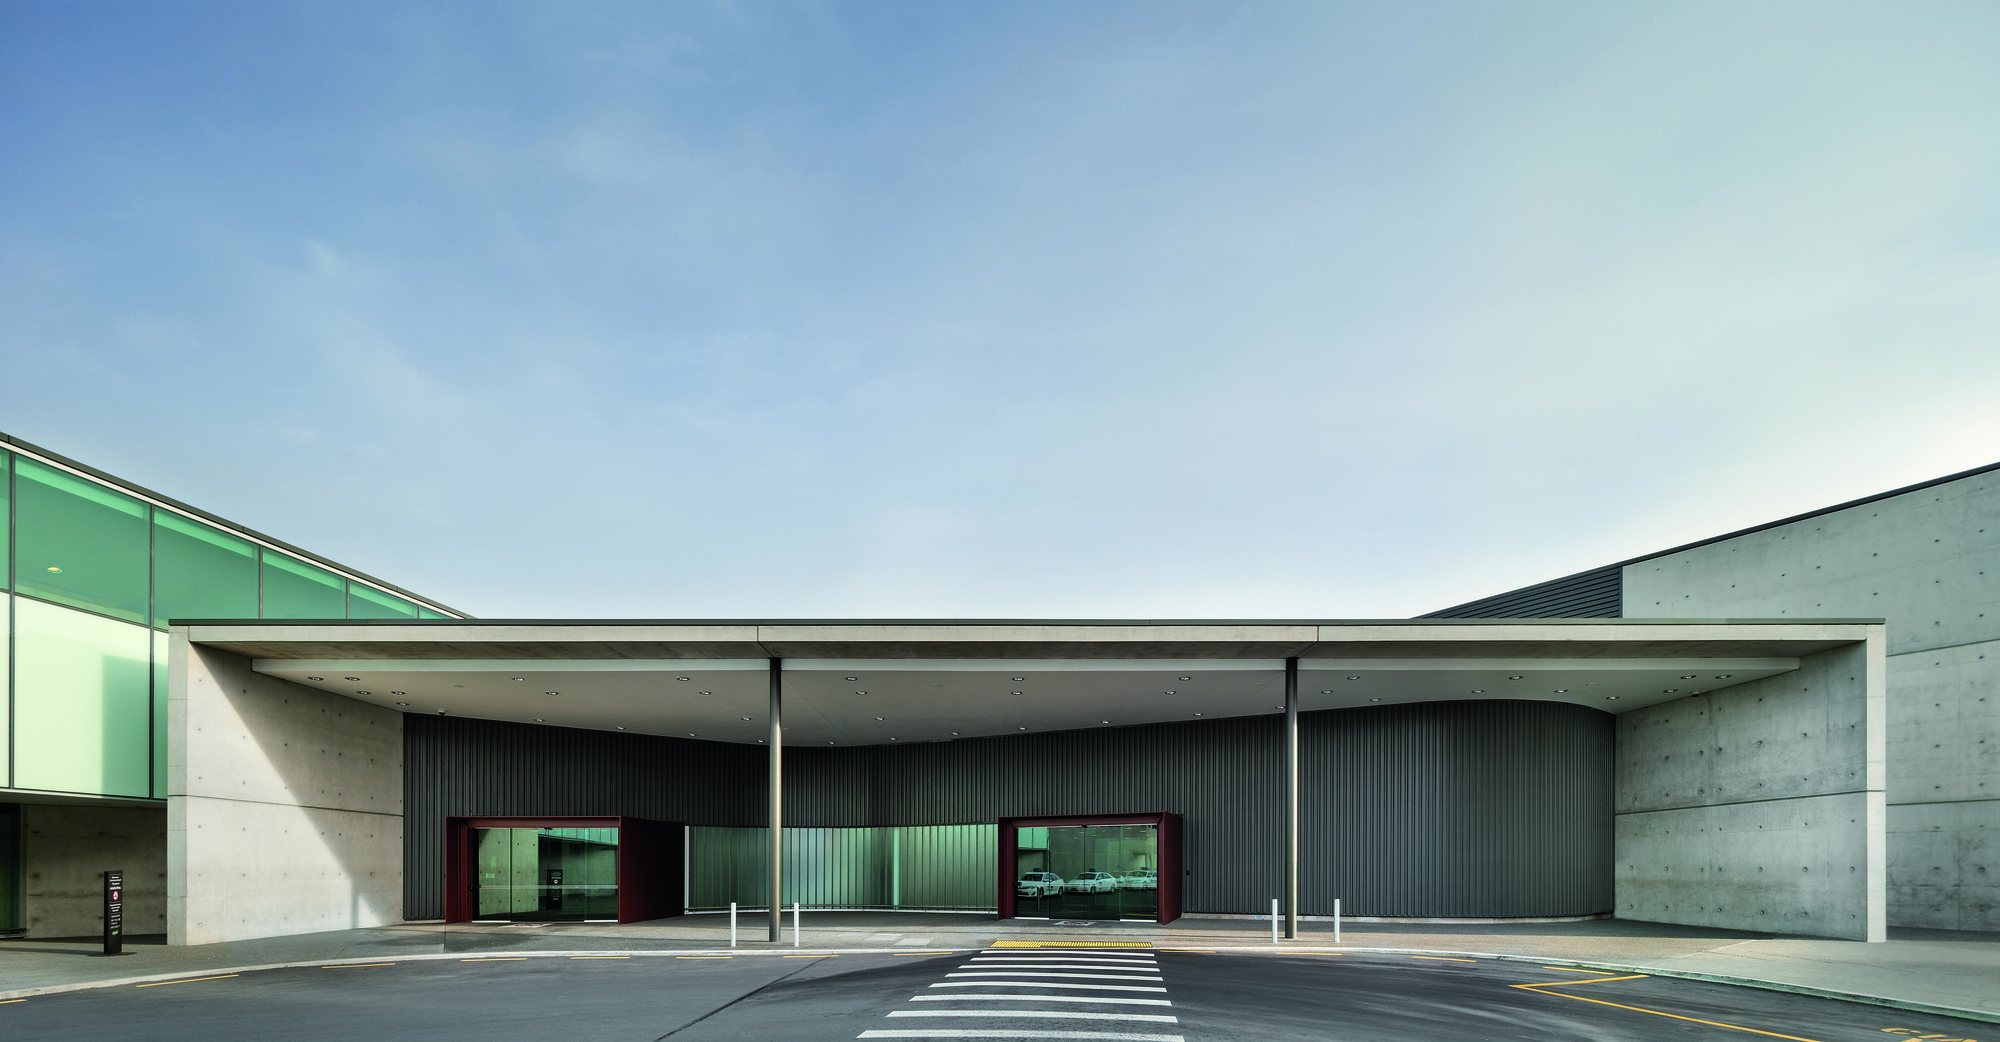 New zealand architecture awards 2014 winners announced for Architects christchurch